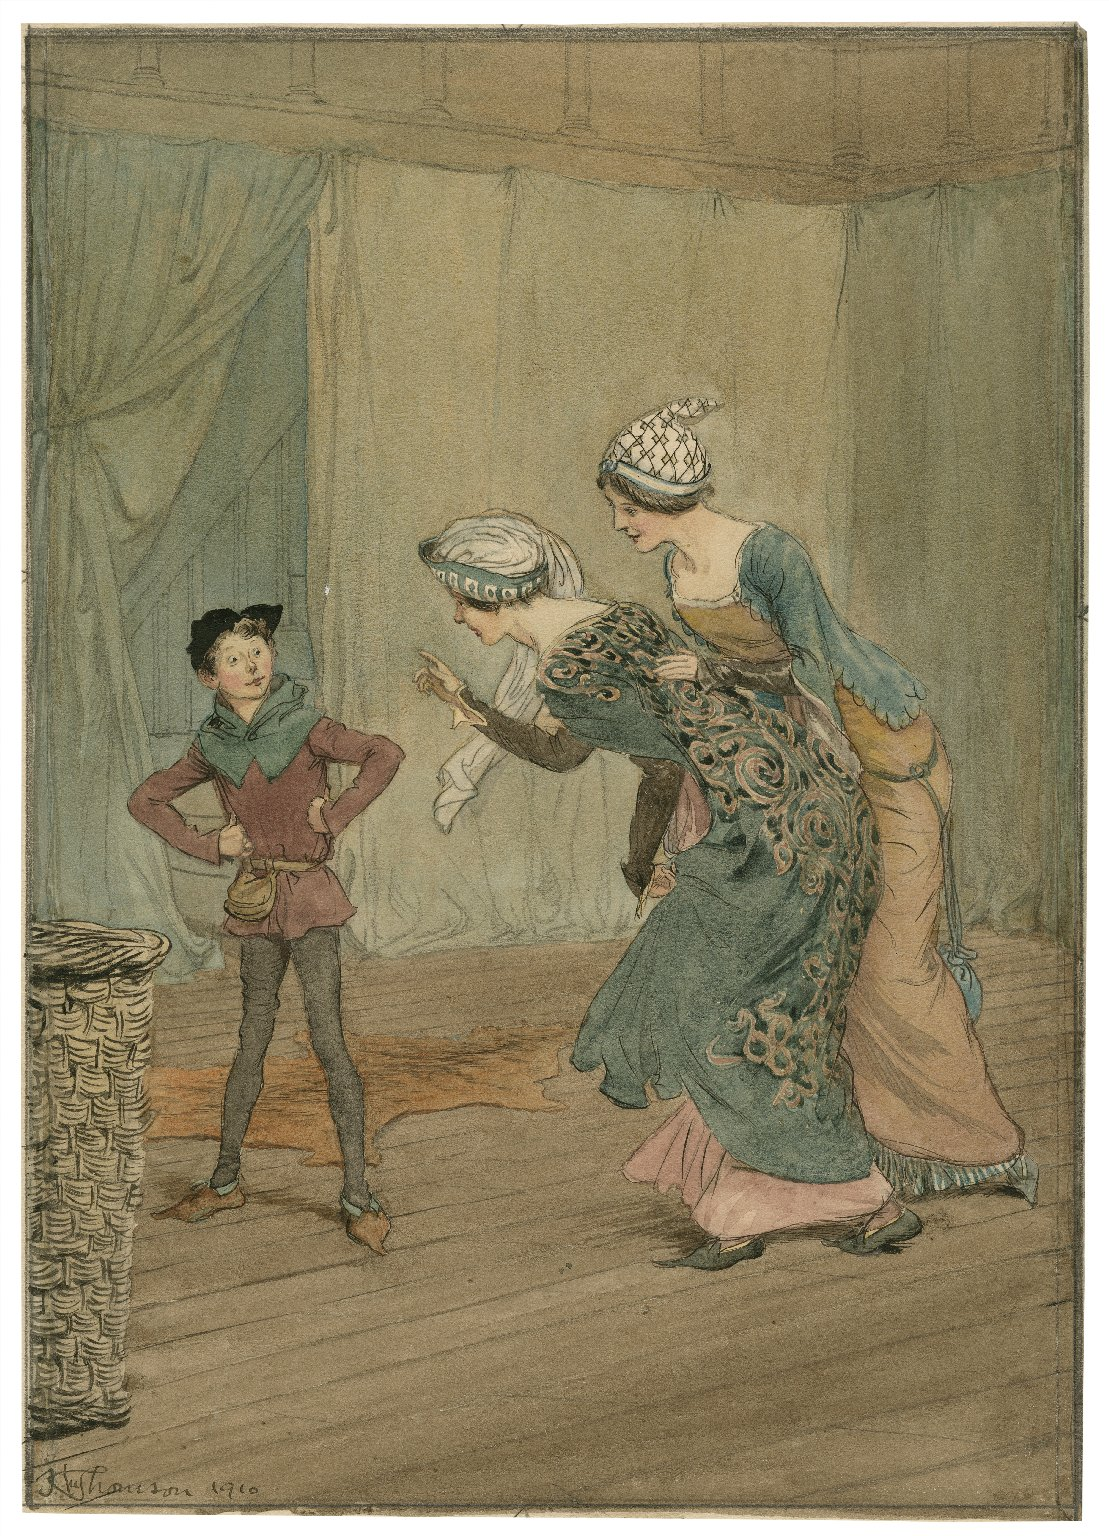 [Illustrations to Merry wives of Windsor] [graphic] / Hu. Thomson.